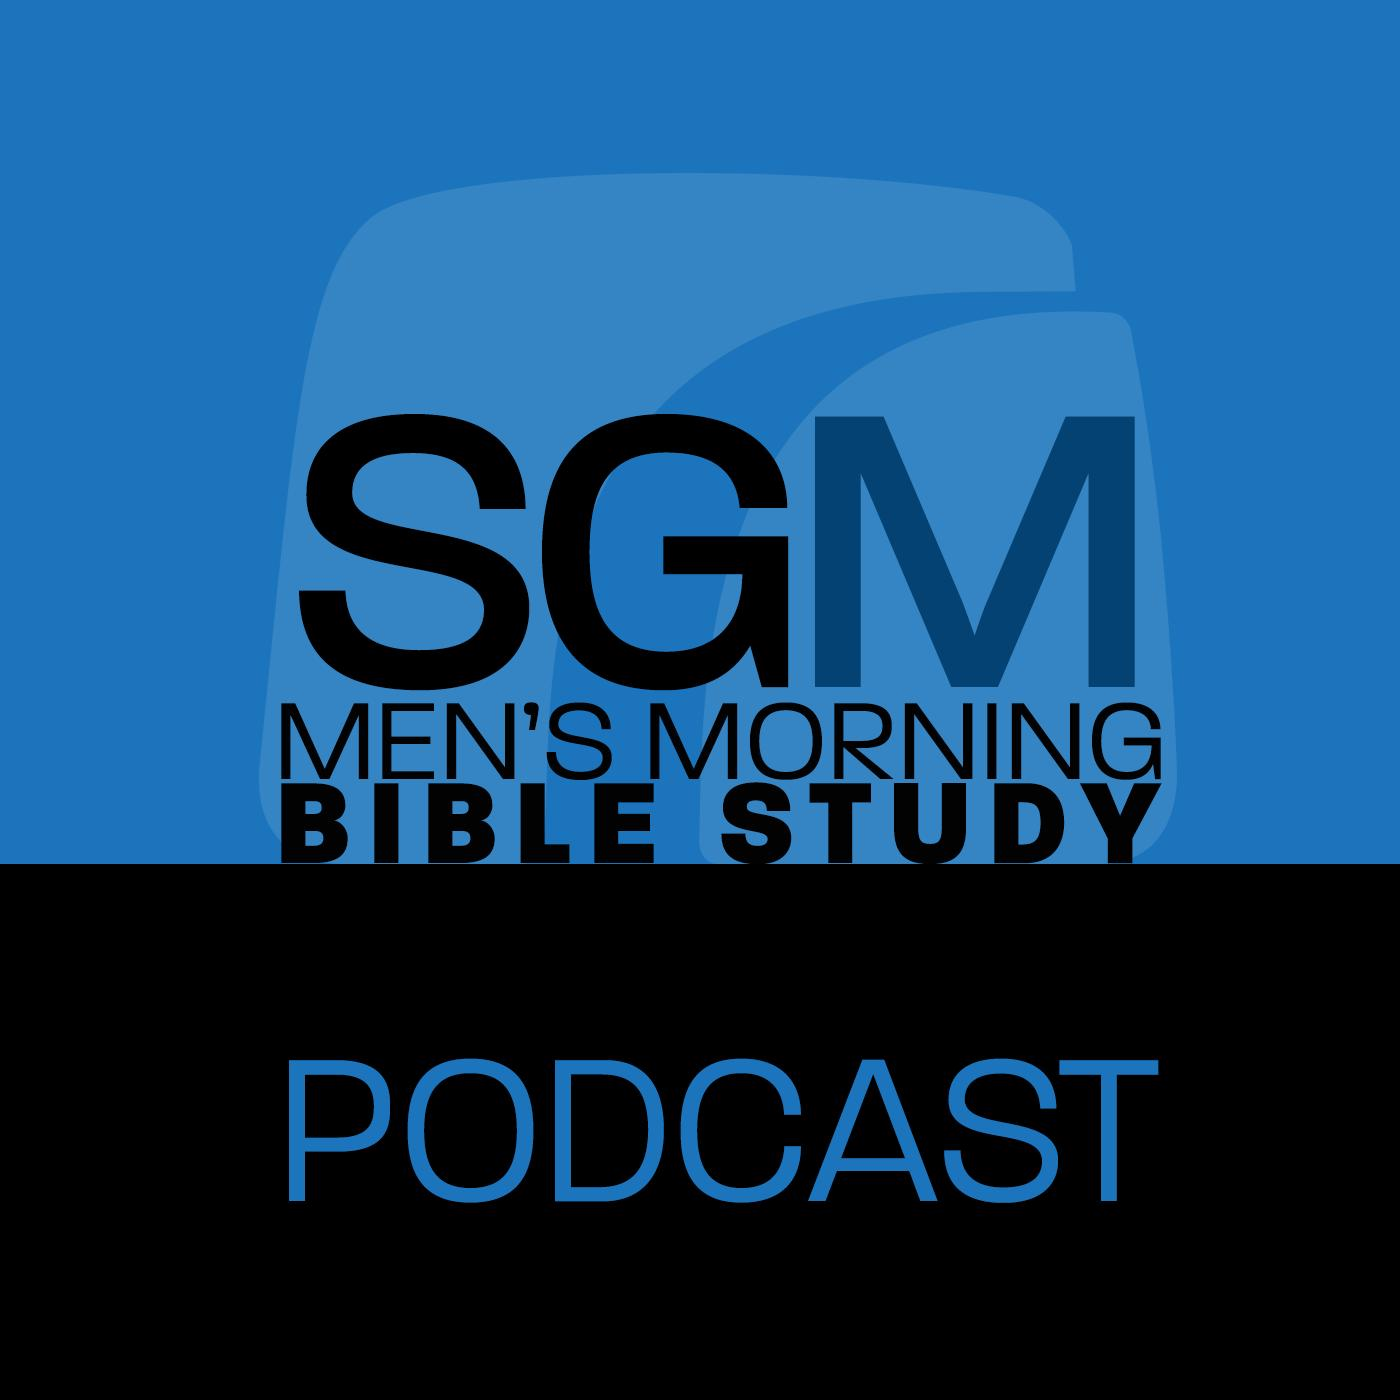 Men's Morning Bible Study